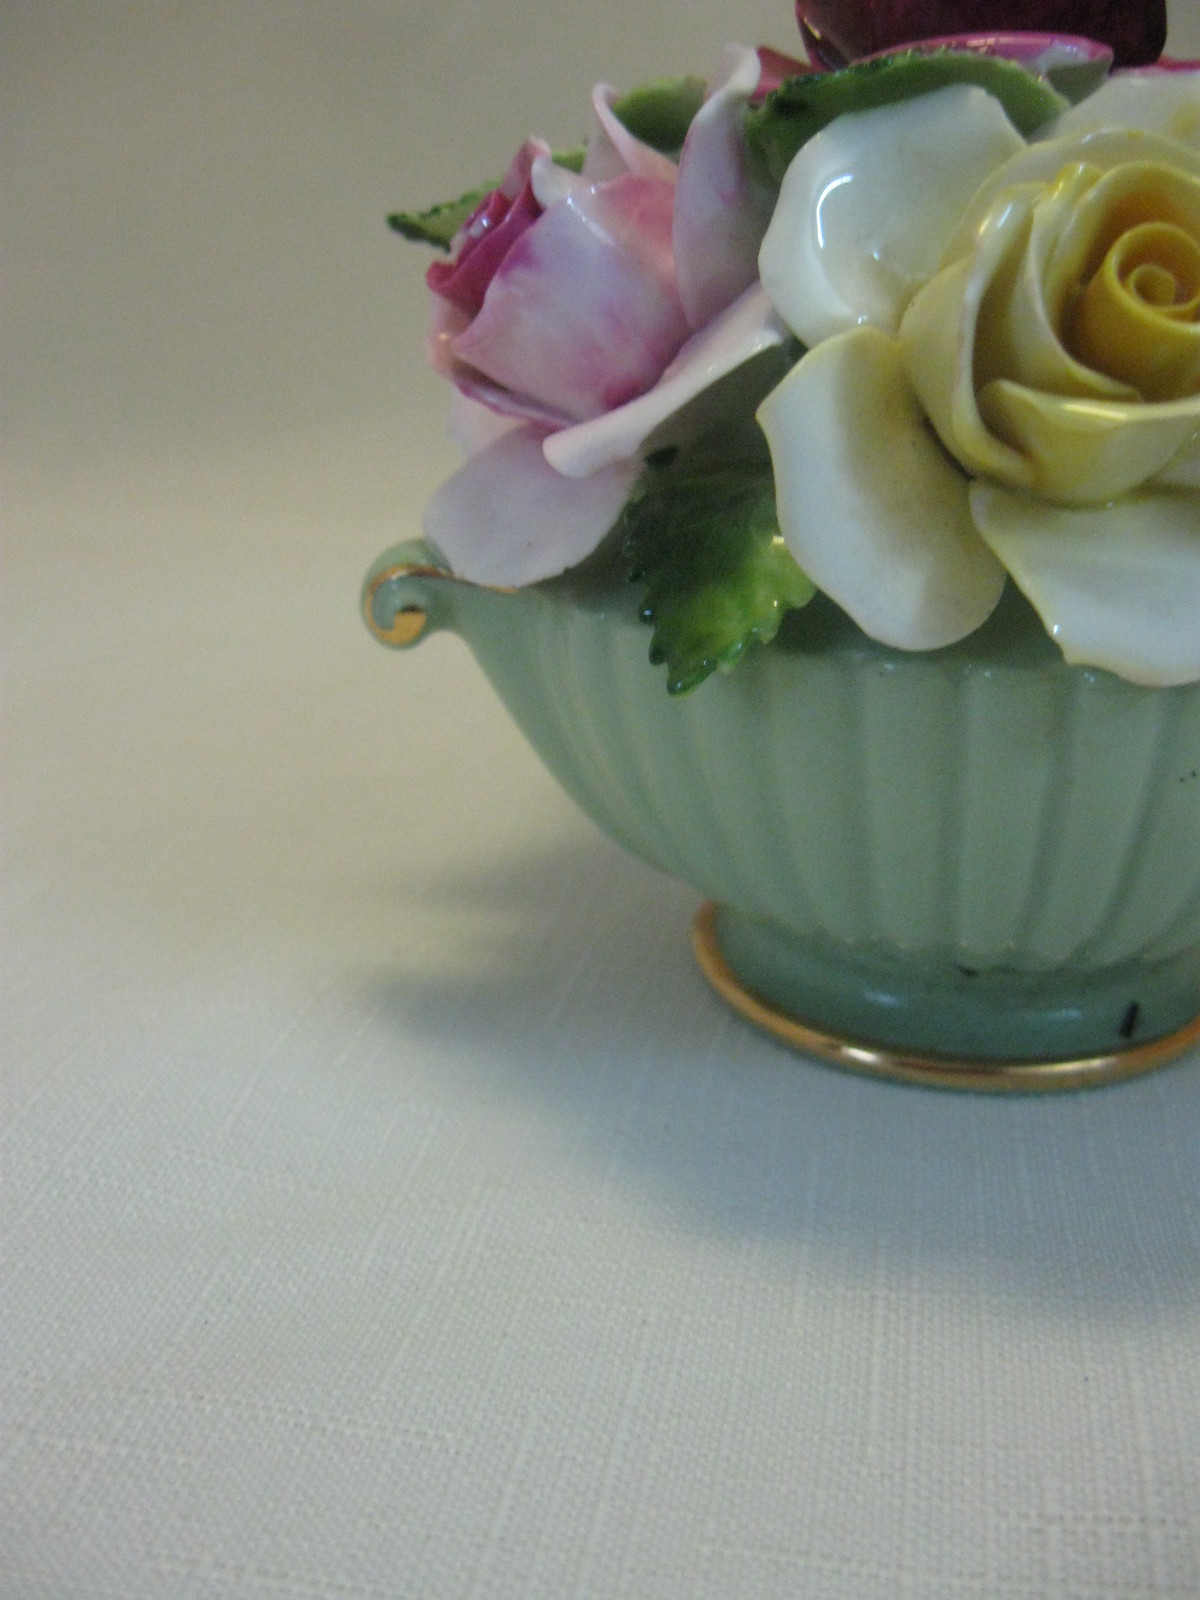 Figurine Floral in Green Pale Vase Bone China Rose Flowers Assorted Colors Royal